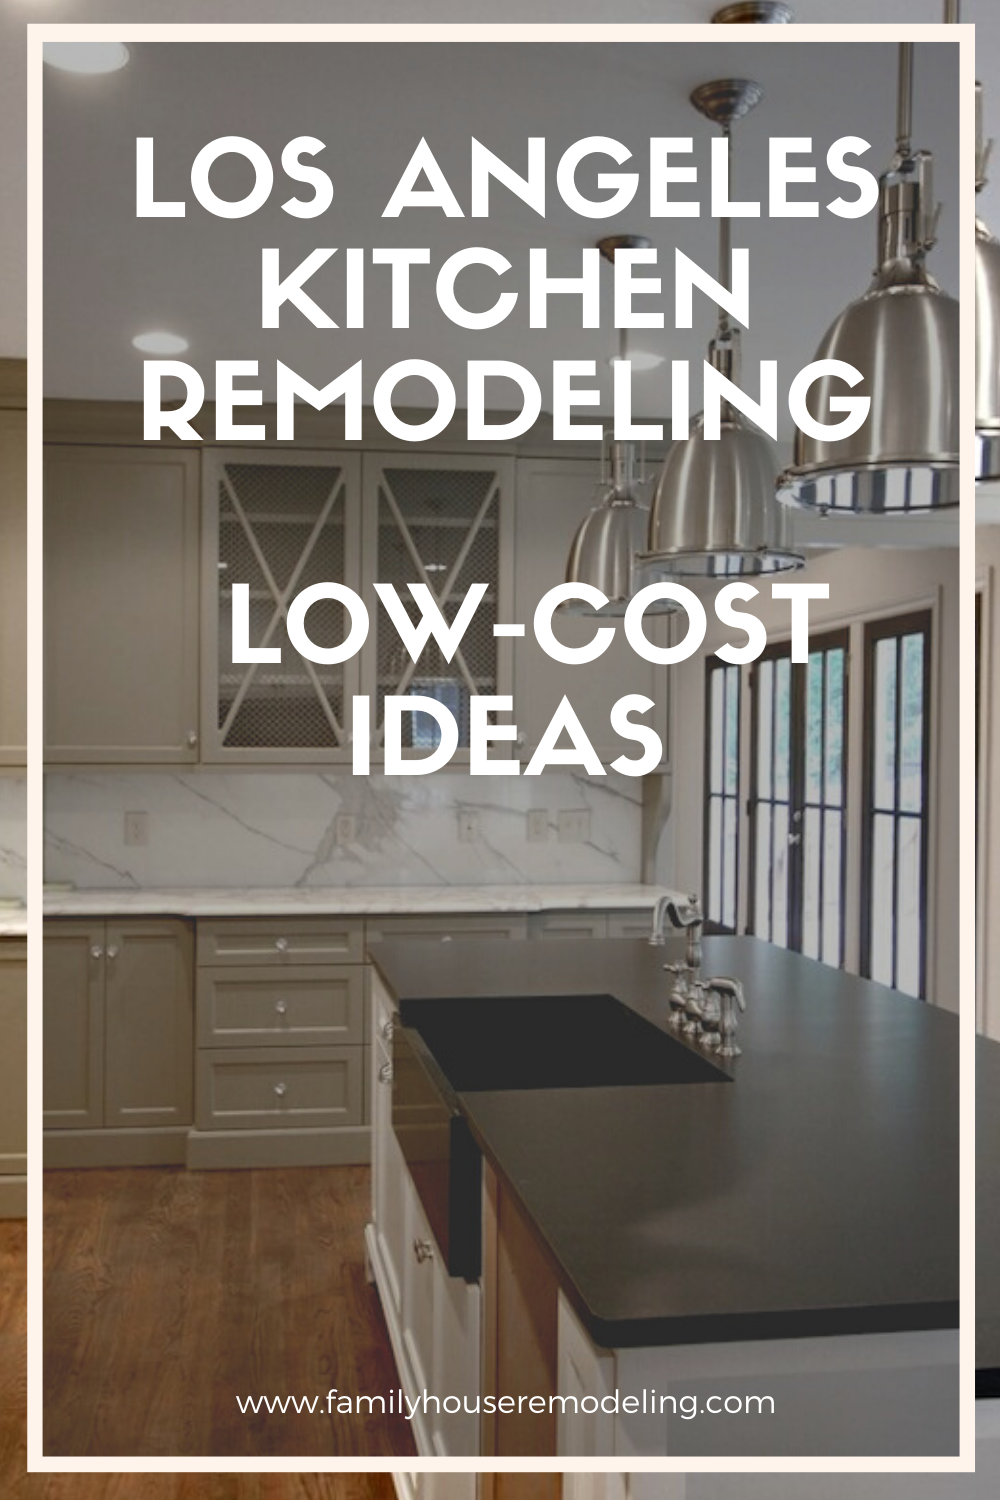 Los Angeles Kitchen Remodeling Low Cost Ideas In 2020 Kitchen Remodel Budget Kitchen Remodel Kitchen Cabinet Remodel